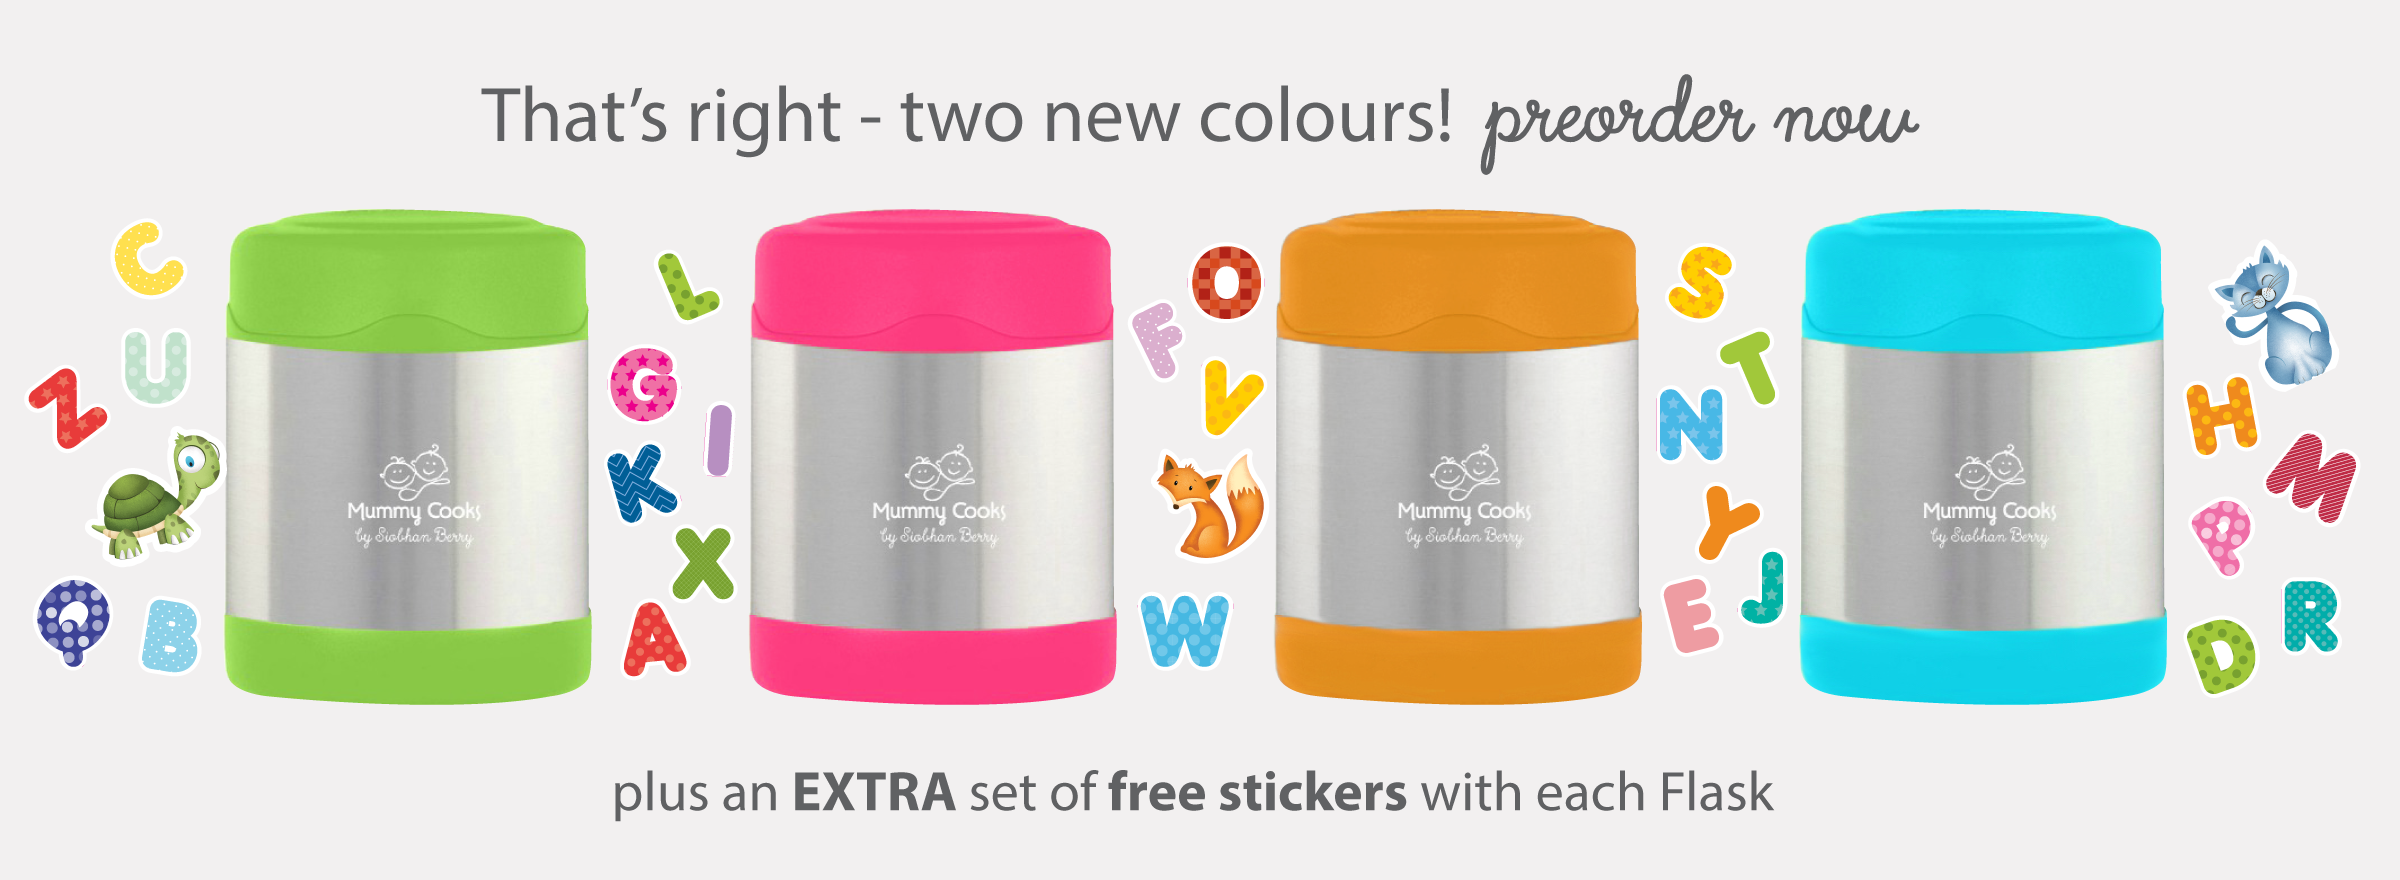 Mummy Cooks New Food Flasks Colours:Plus an EXTRA set of free stickers with each flask